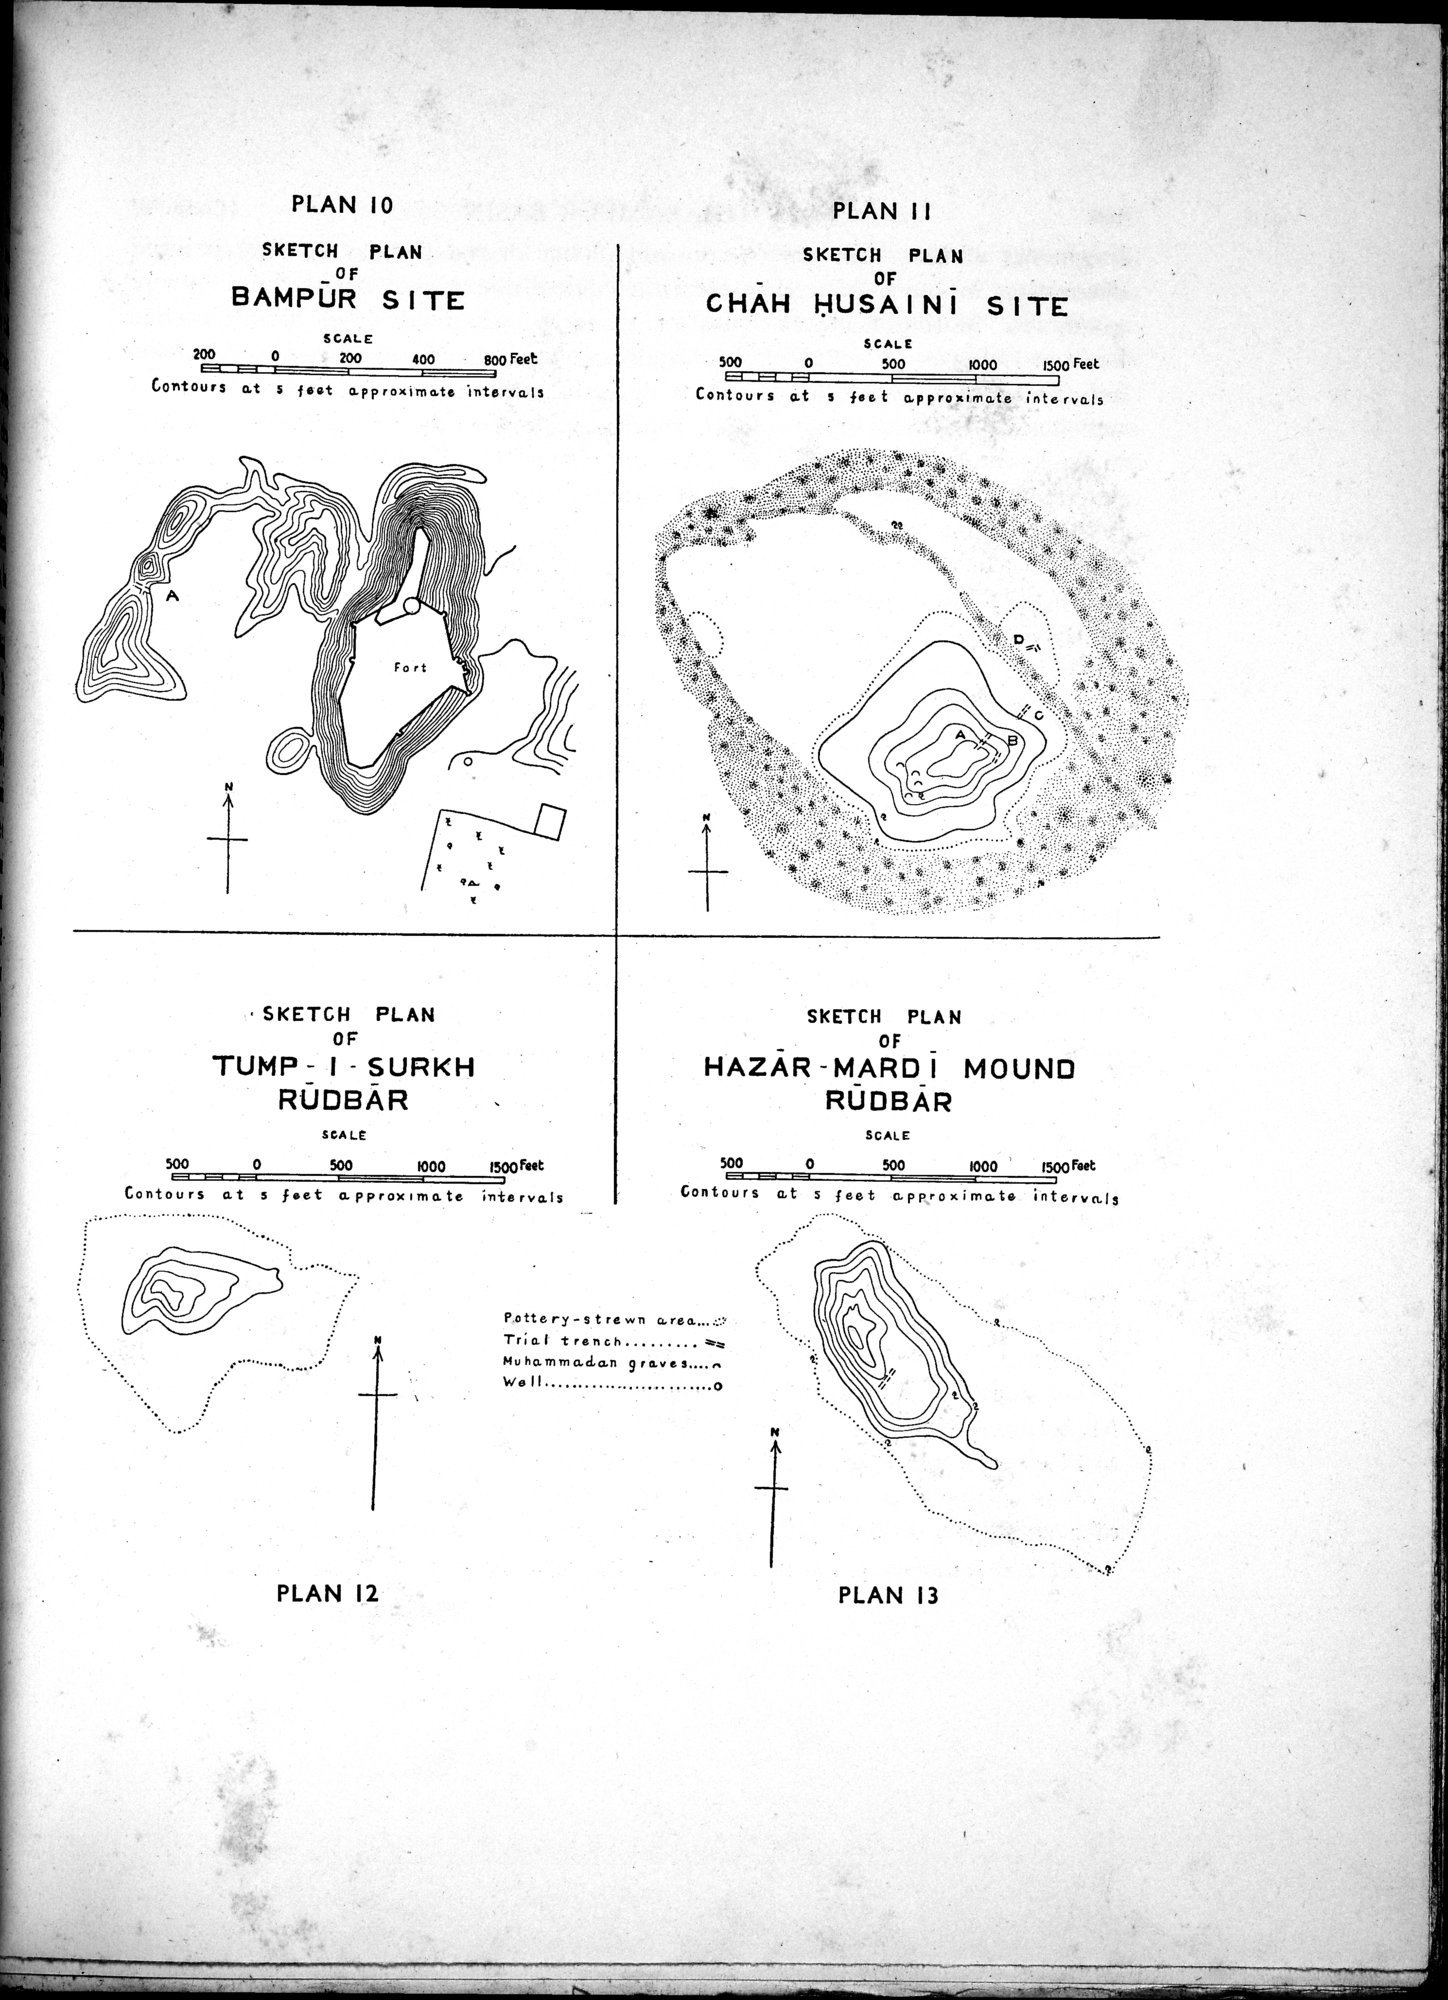 Archaeological Reconnaissances in North-Western India and South-Eastern Īrān : vol.1 / Page 159 (Grayscale High Resolution Image)